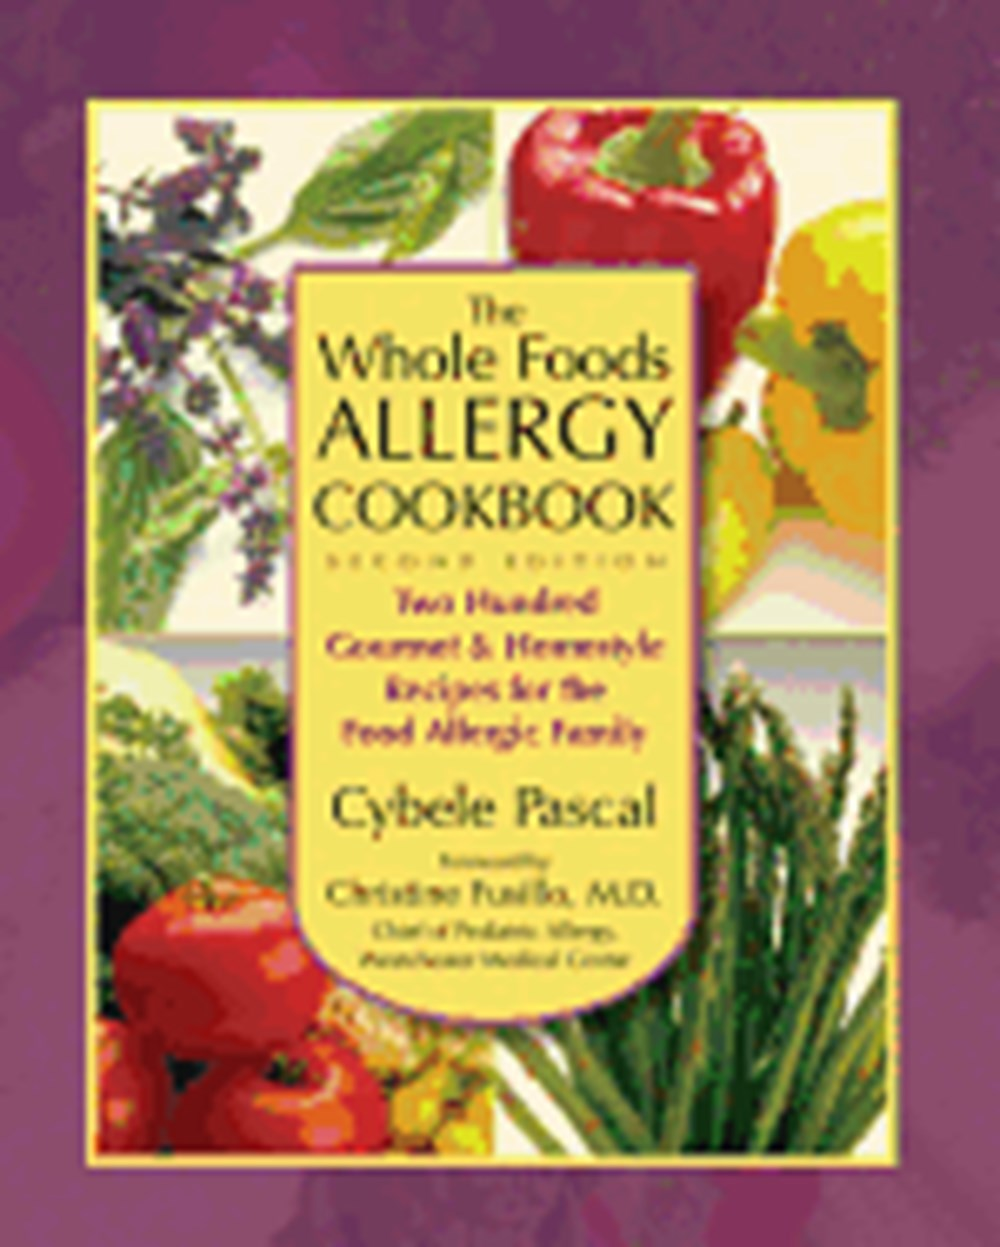 Whole Foods Allergy Cookbook Two Hundred Gourmet & Homestyle Recipes for the Food Allergic Family